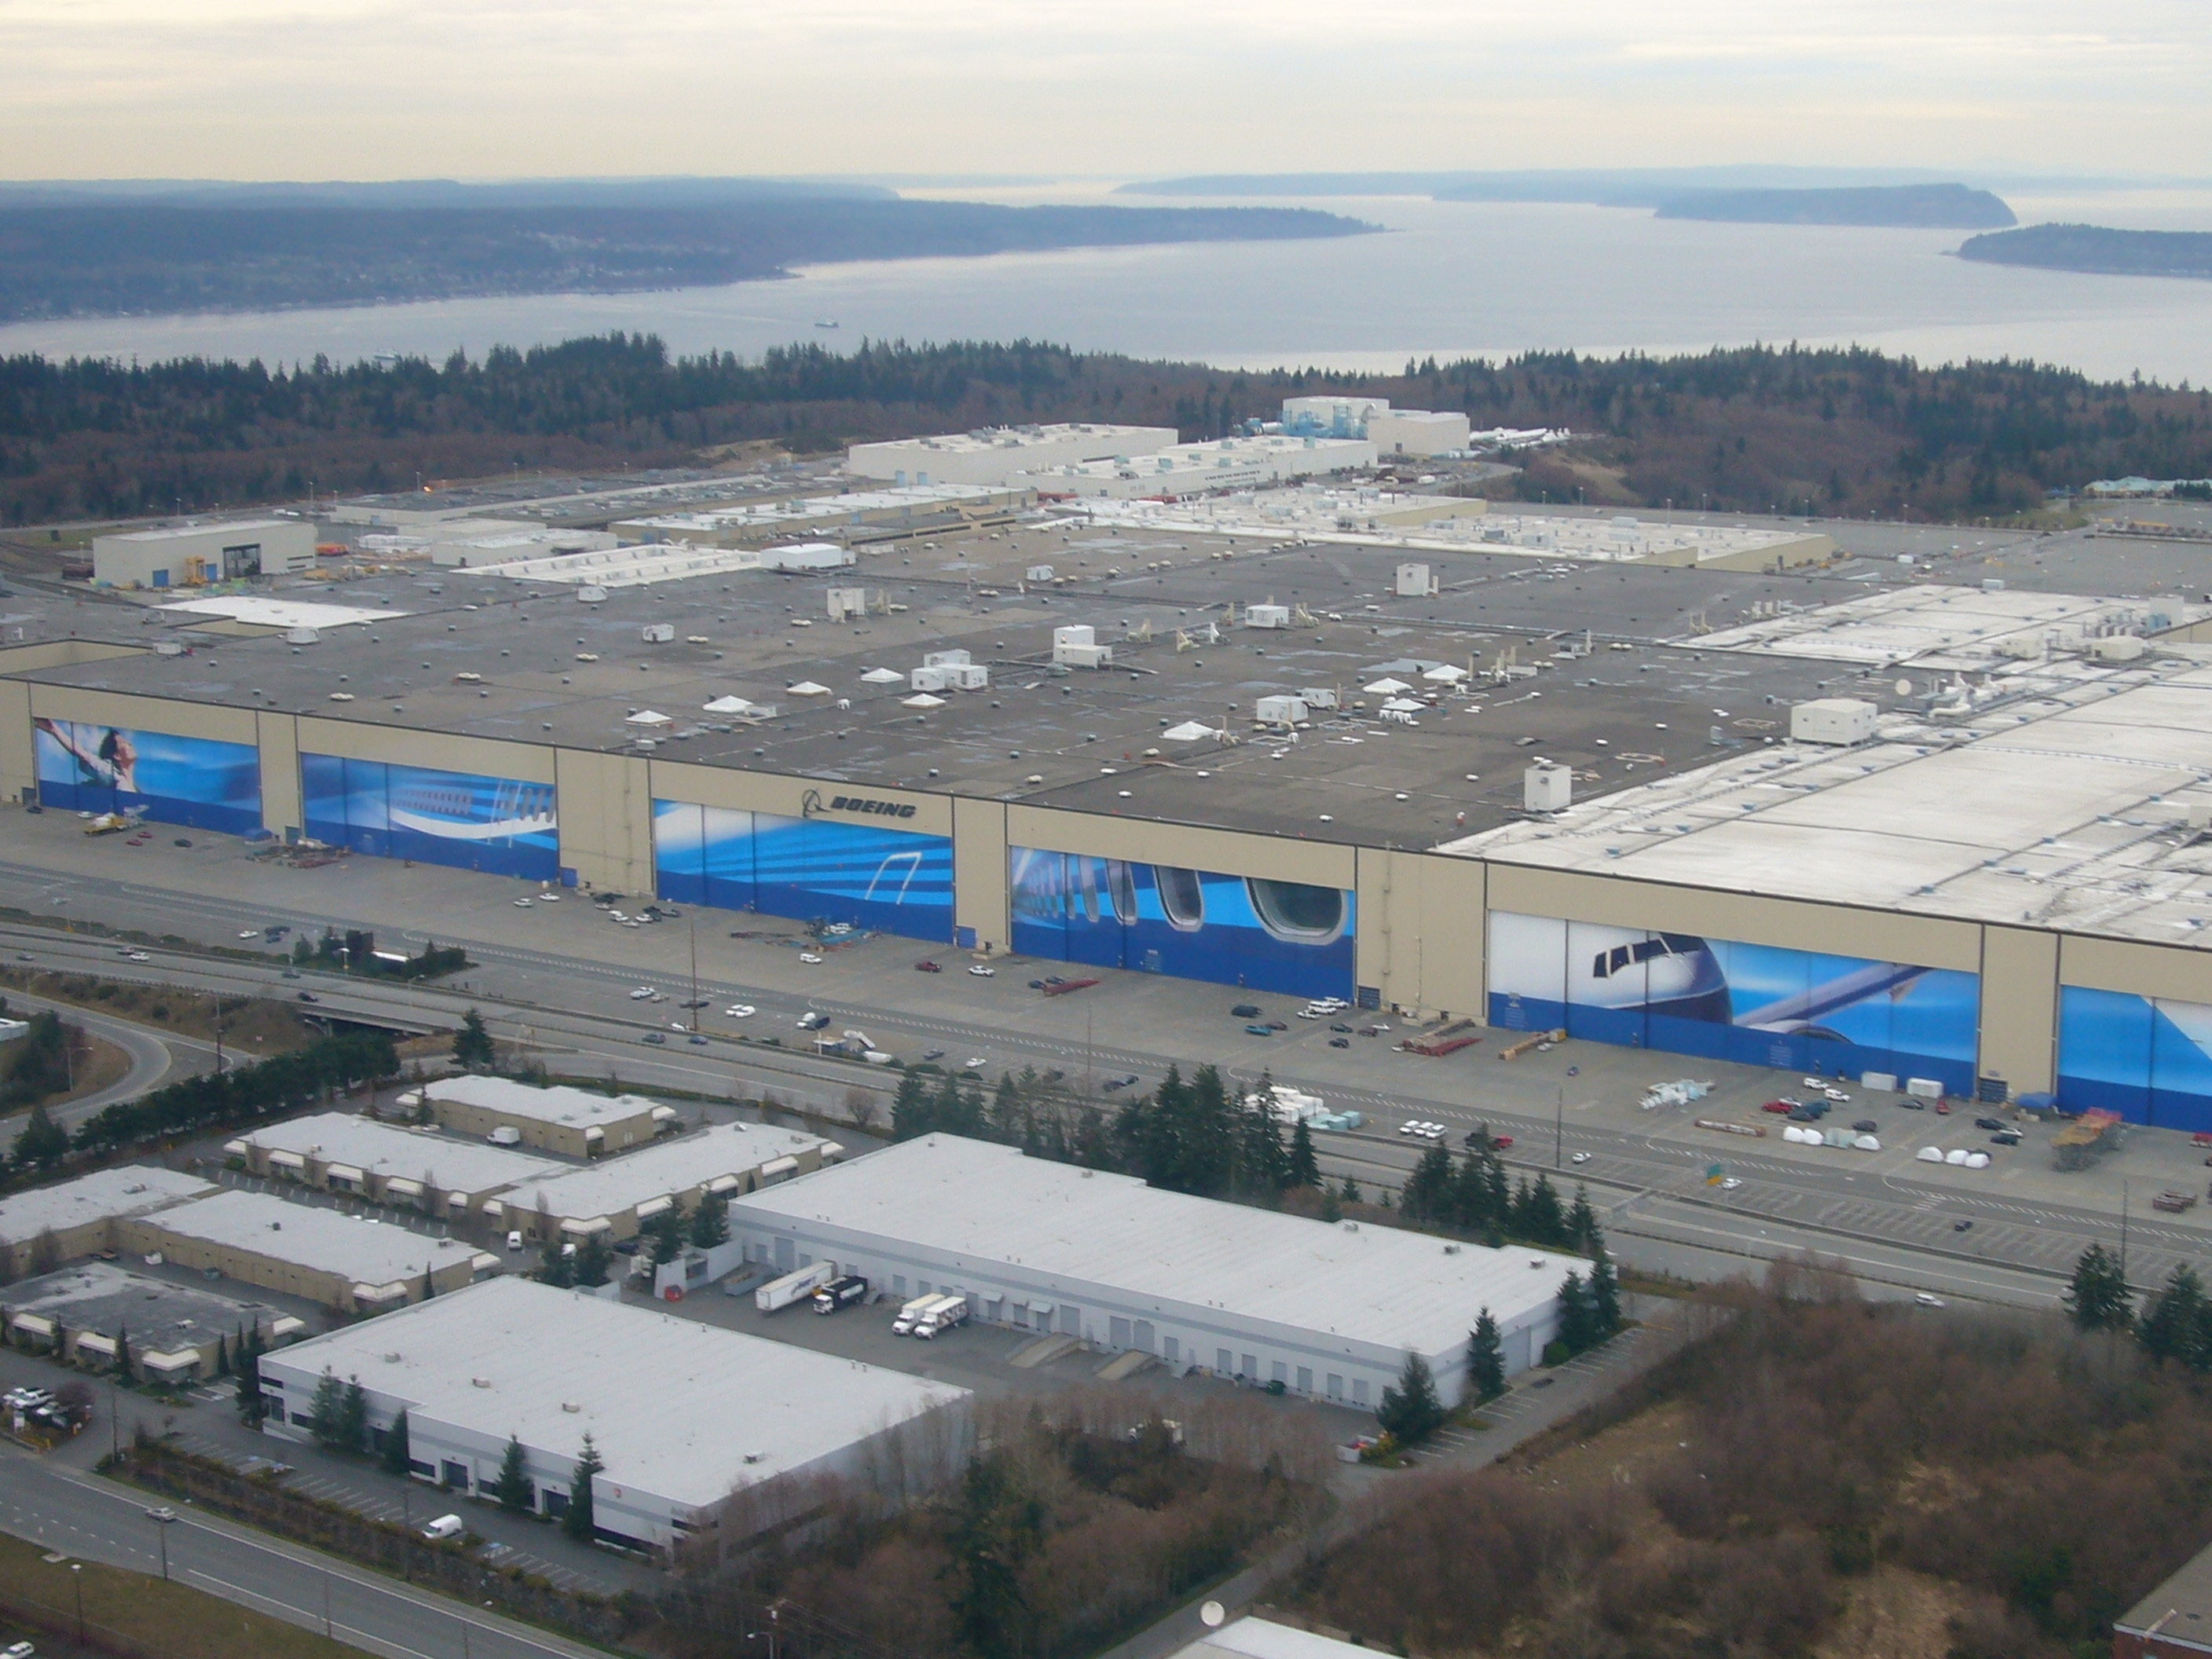 Boeing Everett Factory - Wikipedia with regard to Boeing Everett Factory Google Maps